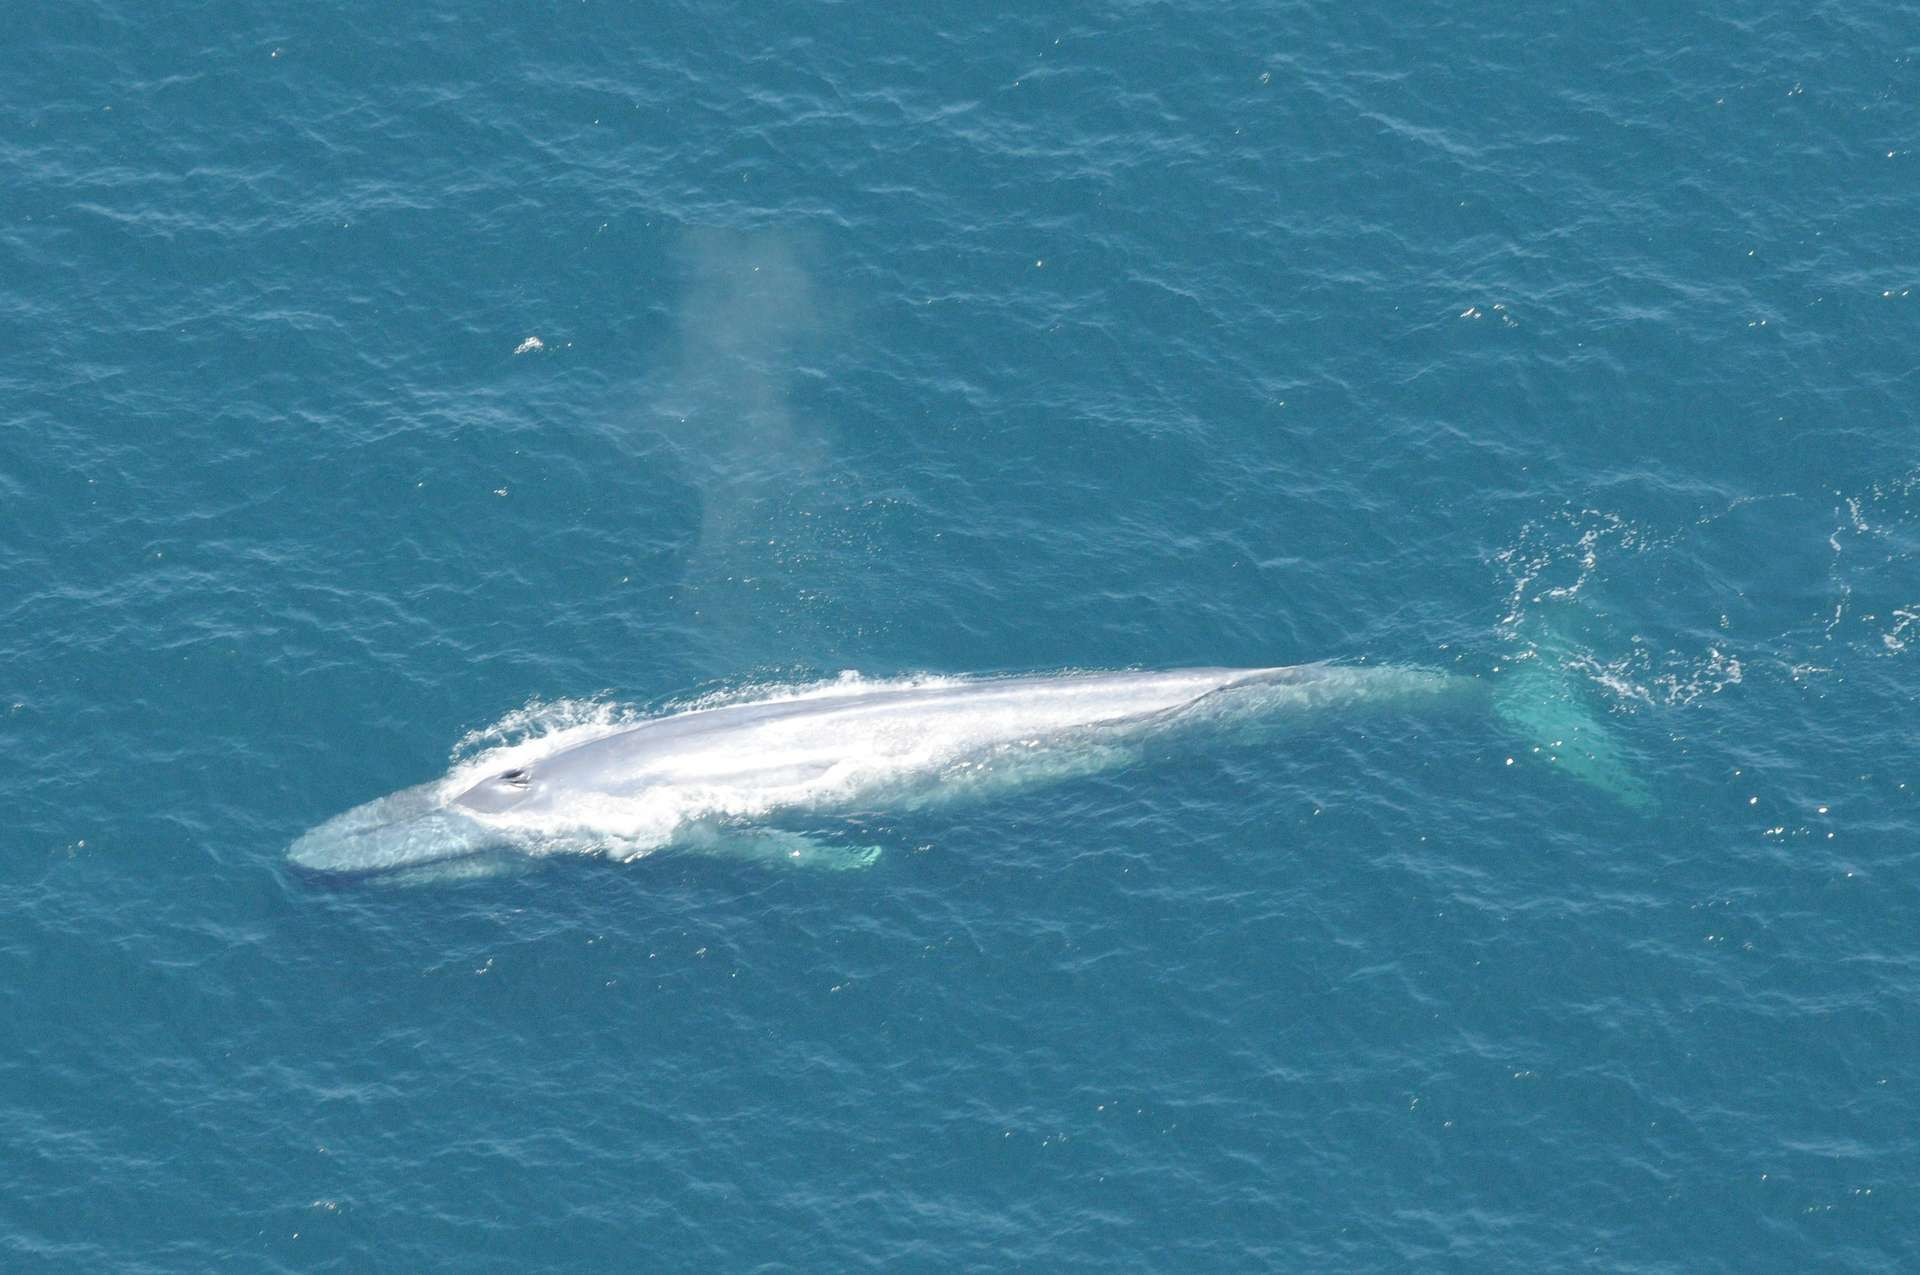 La baleine bleue est la plus gros animal sur Terre. © NOAA, Channel Islands National Marine Sanctuary